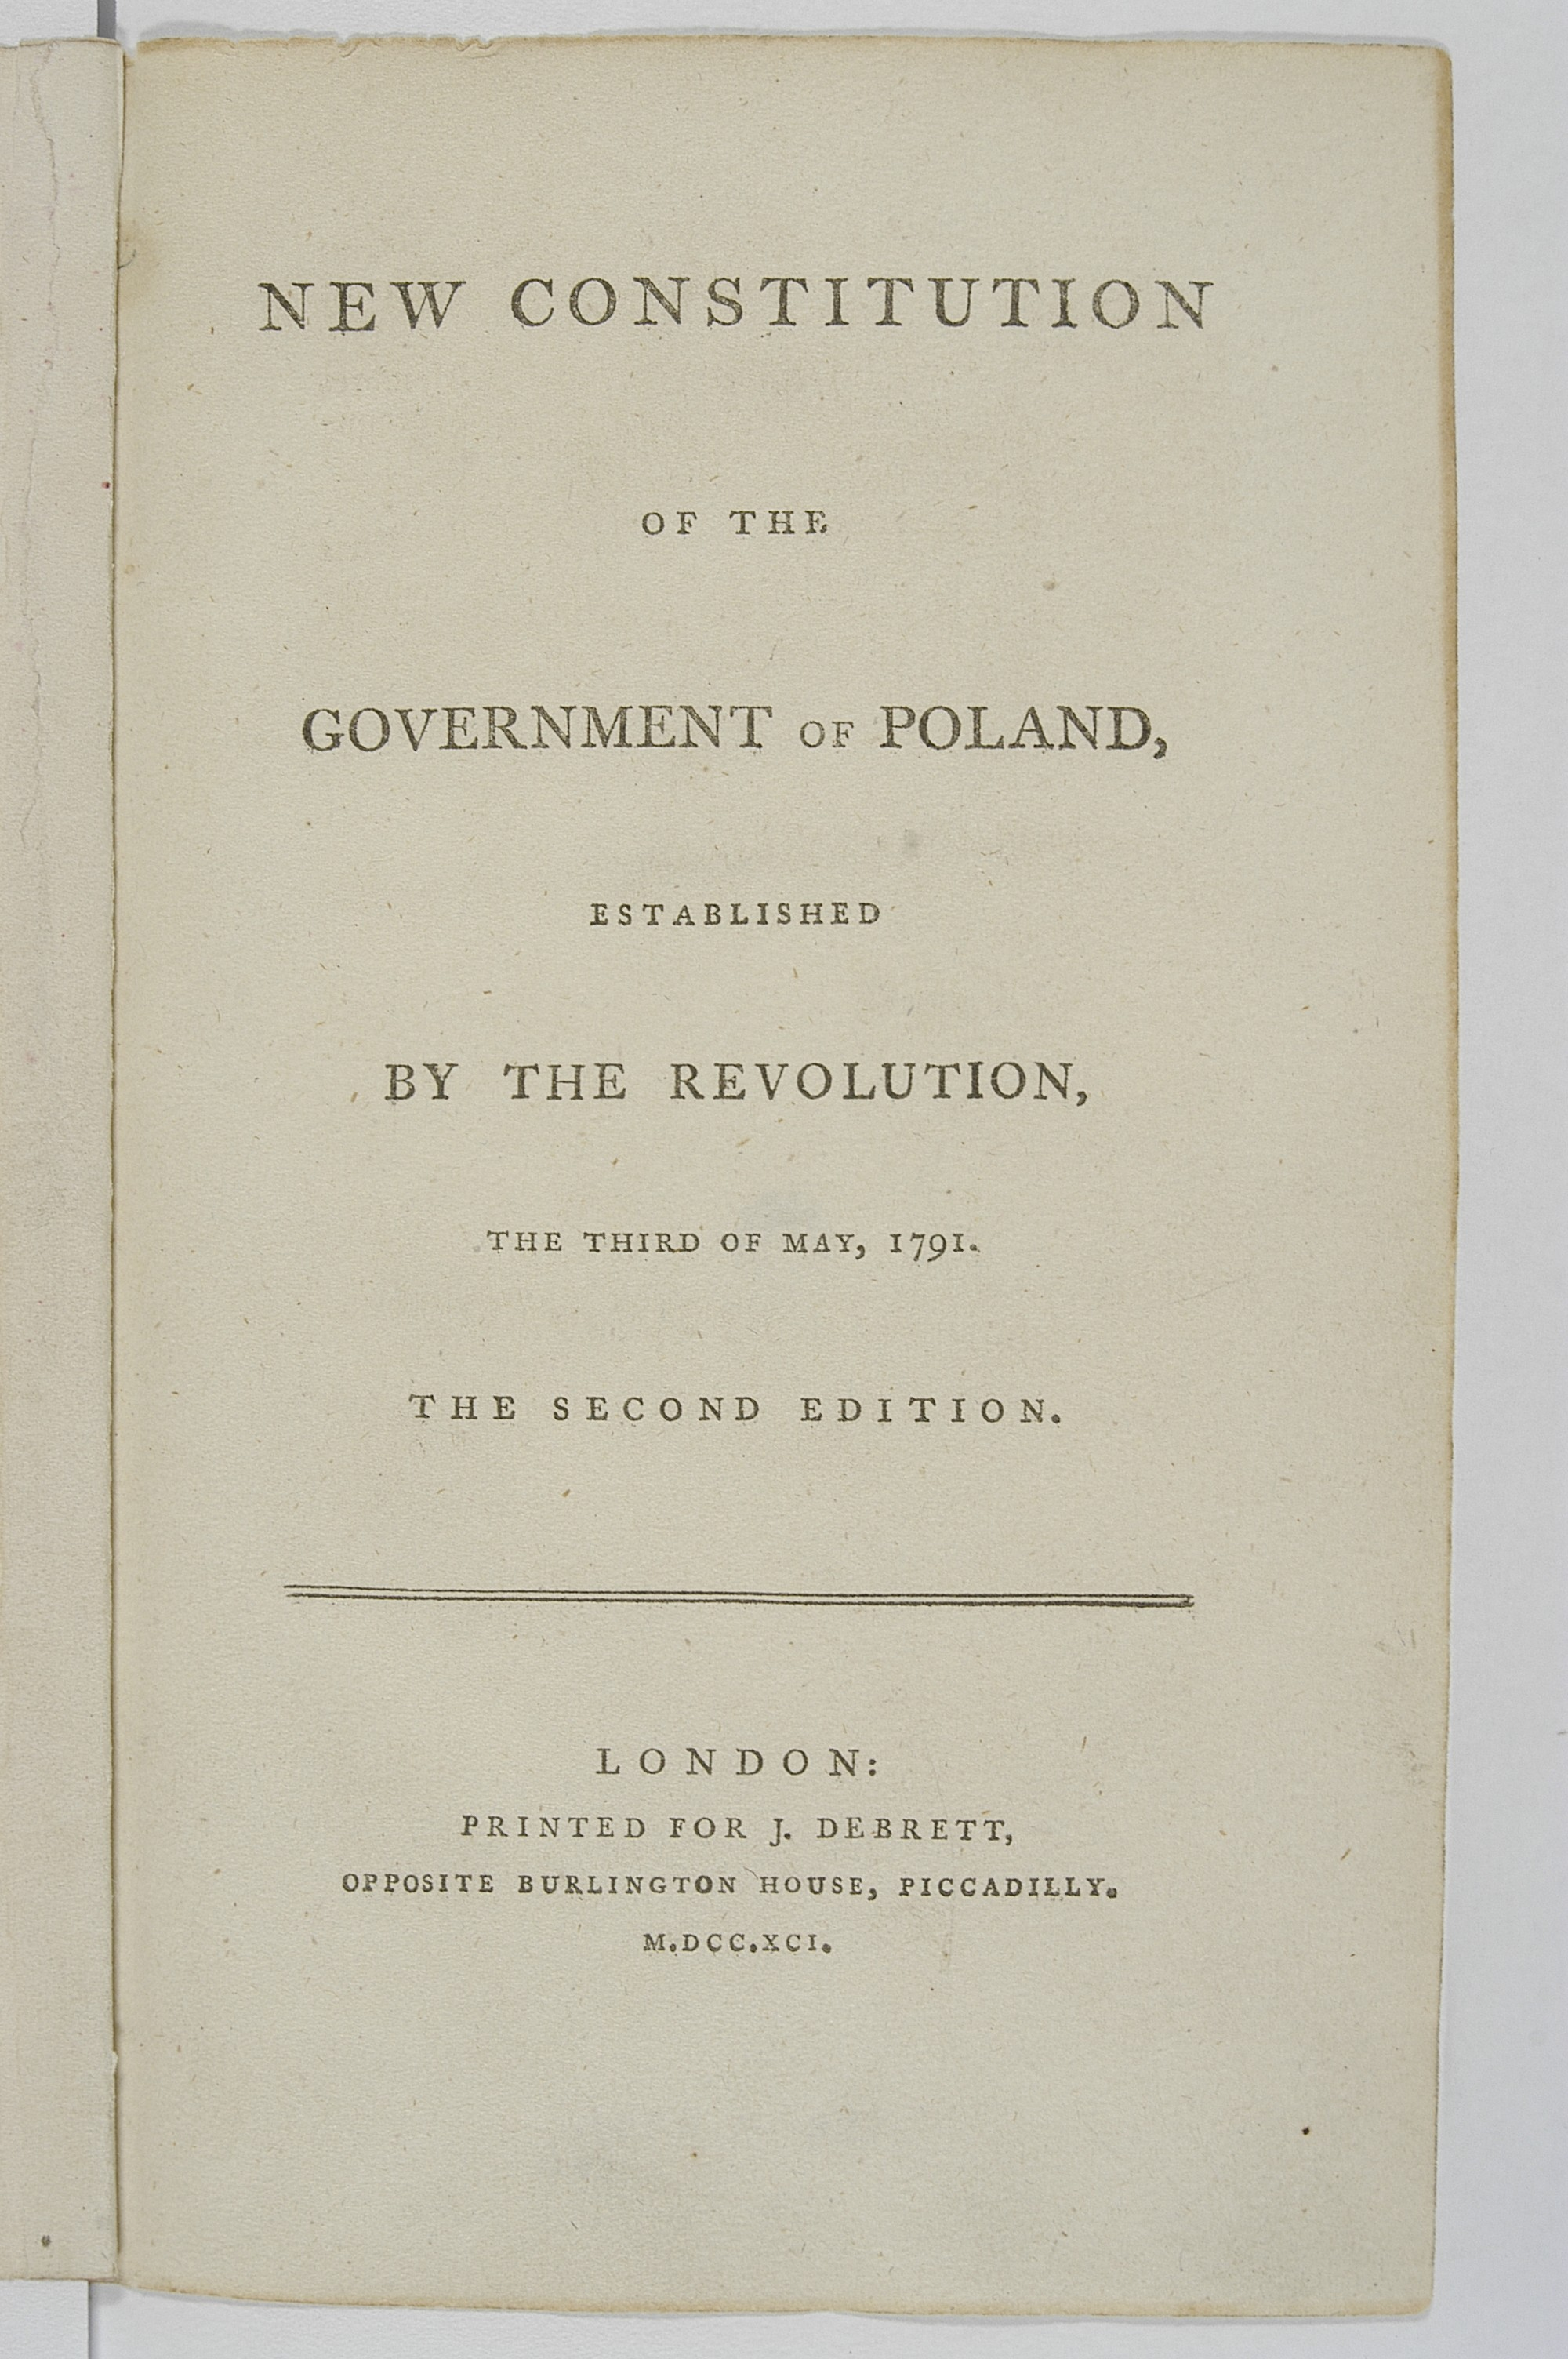 https://upload.wikimedia.org/wikipedia/commons/4/4f/Constitution_of_the_3rd_May_1791_-_print_in_London_-_1791_AD.jpg